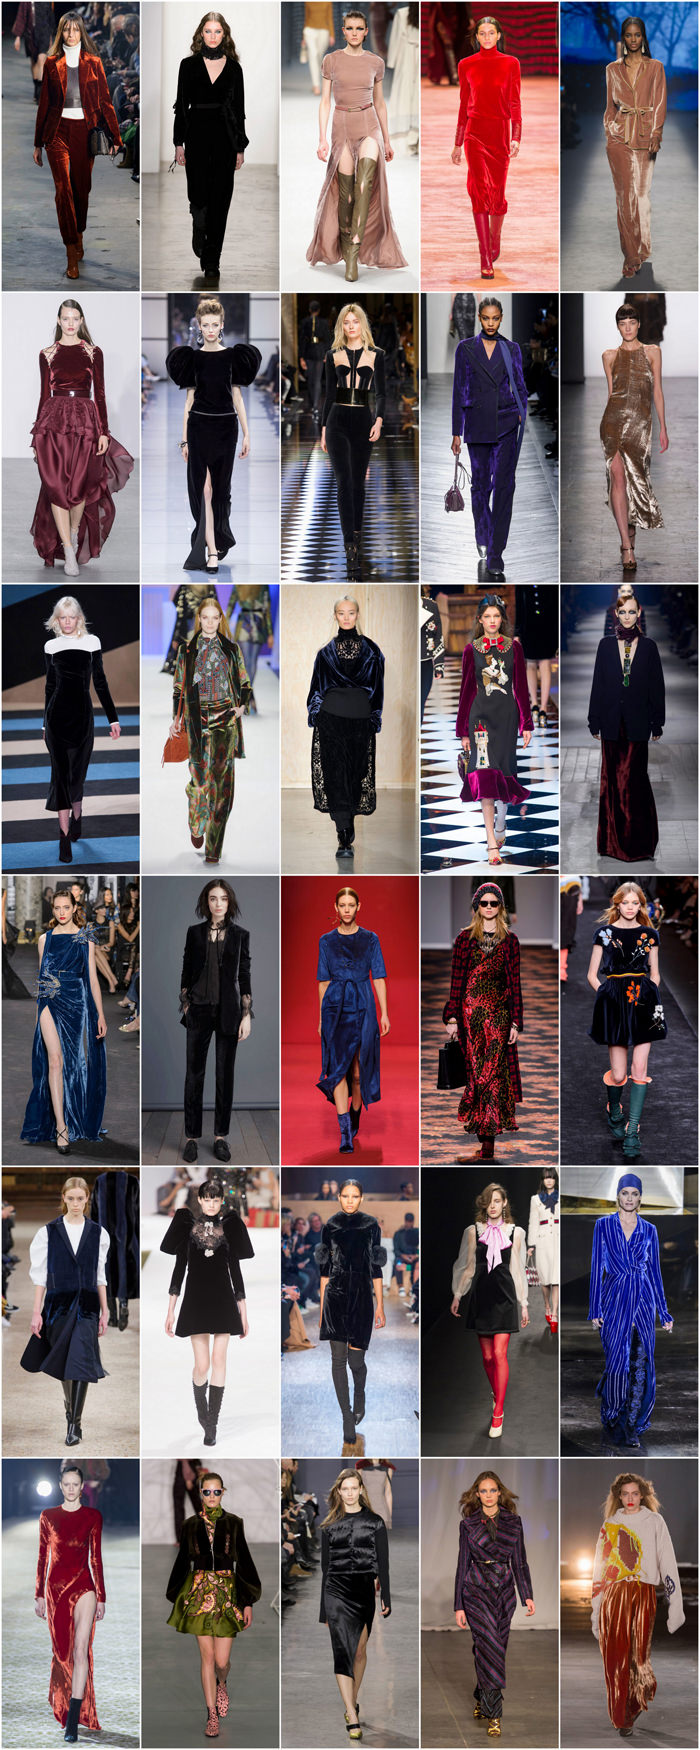 Translating-The-Trends-Fall-2016-Collection-Velvet-Fashion-Accessories-Bags-Shoes-Jewelry-Tom-Lorenzo-Site (1)